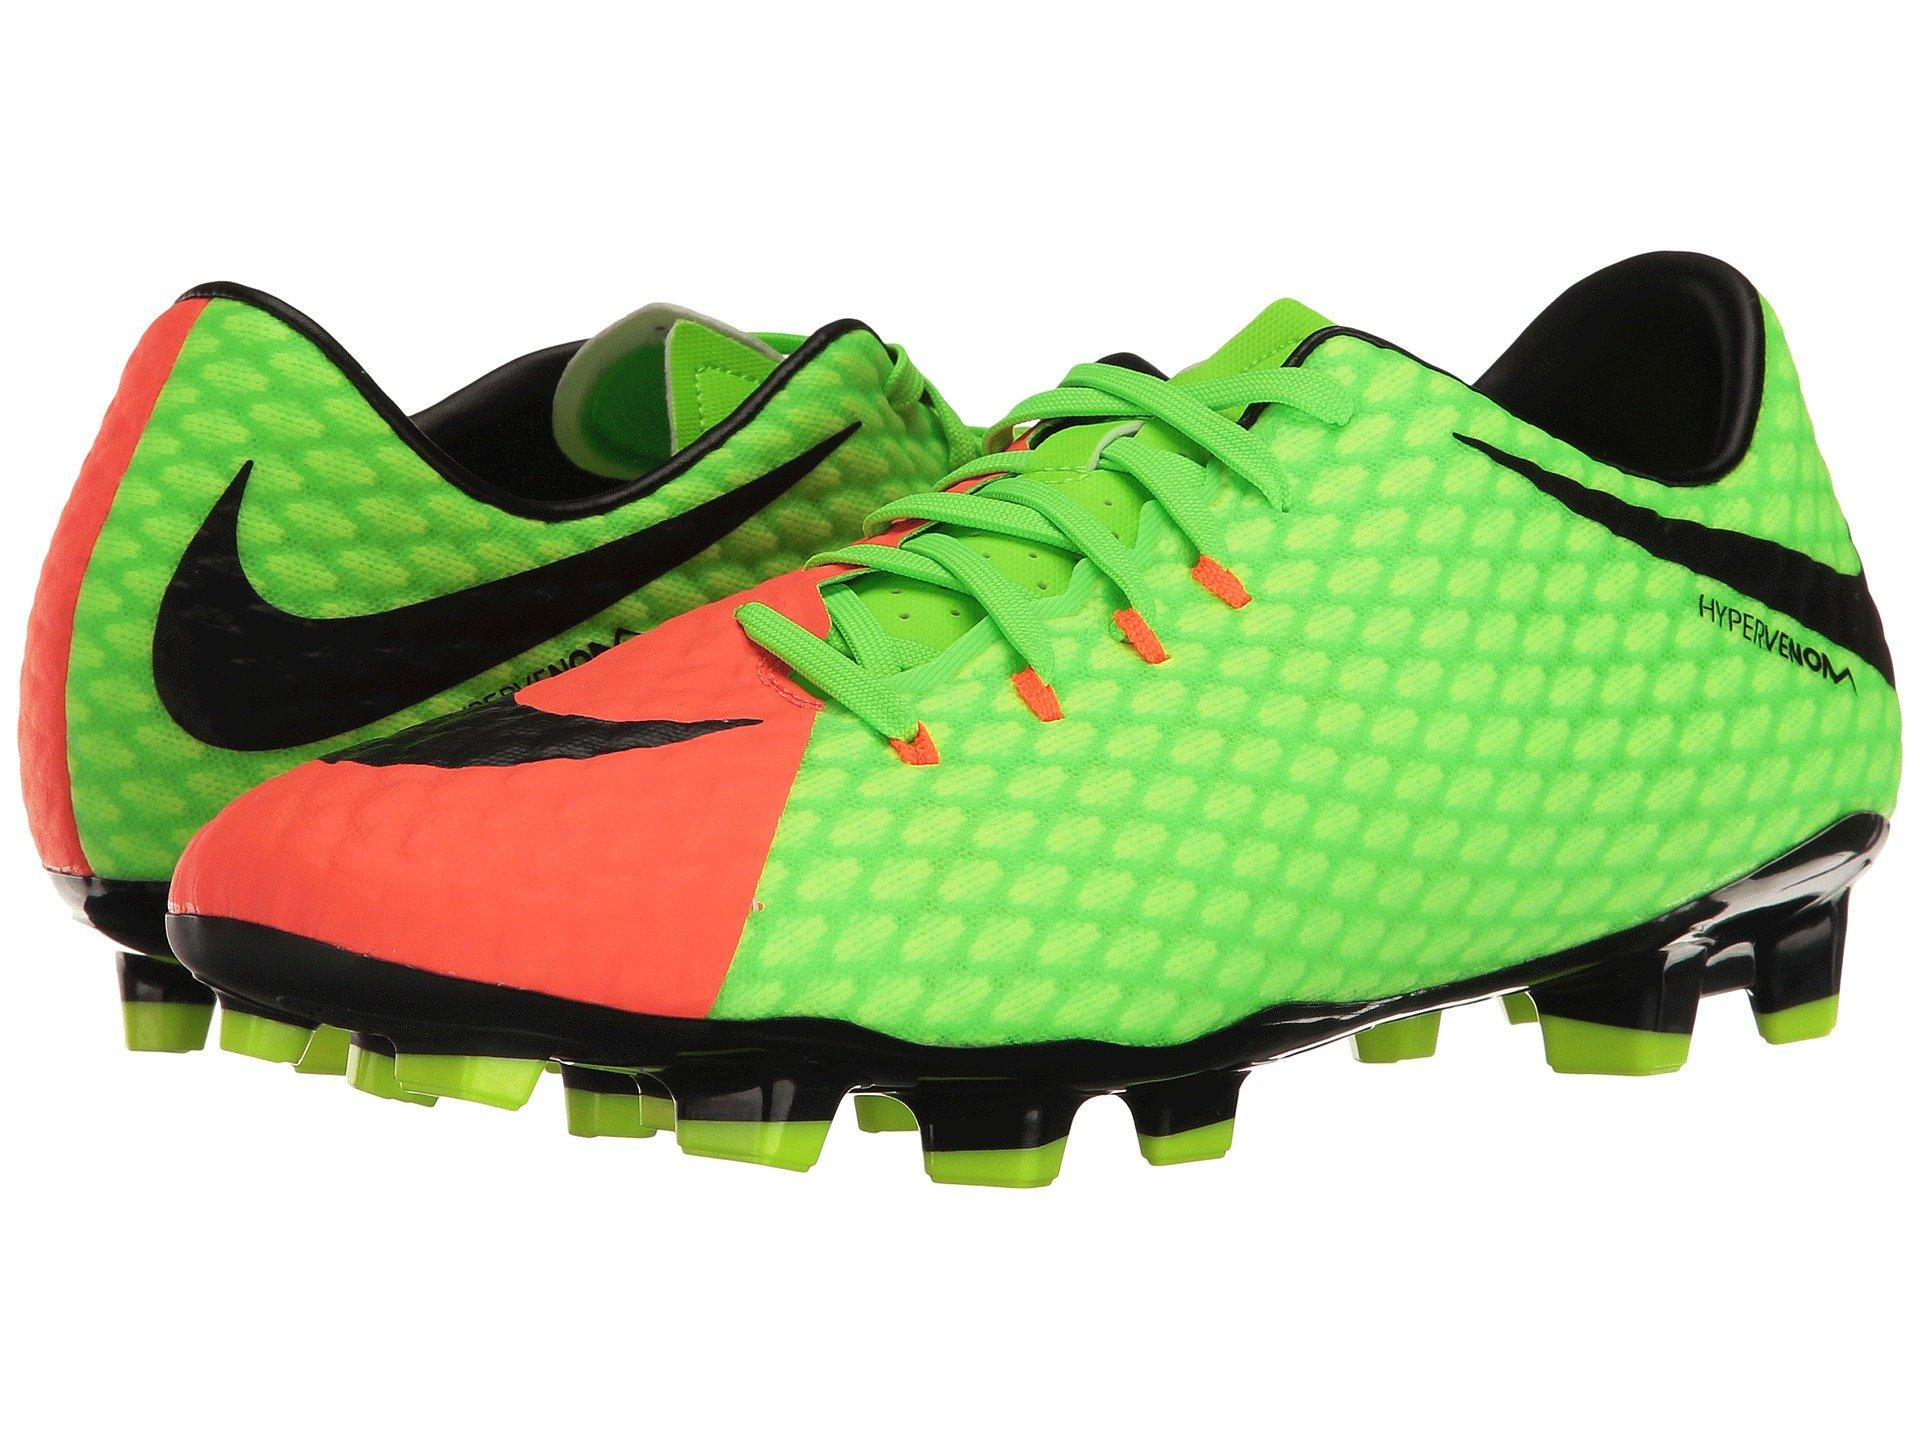 cf808ca118a Bring your best to every match in the Nike® Hypervenom Phelon III FG soccer  cleat! Uppers made from coated mesh and textile. Lace-up closure.